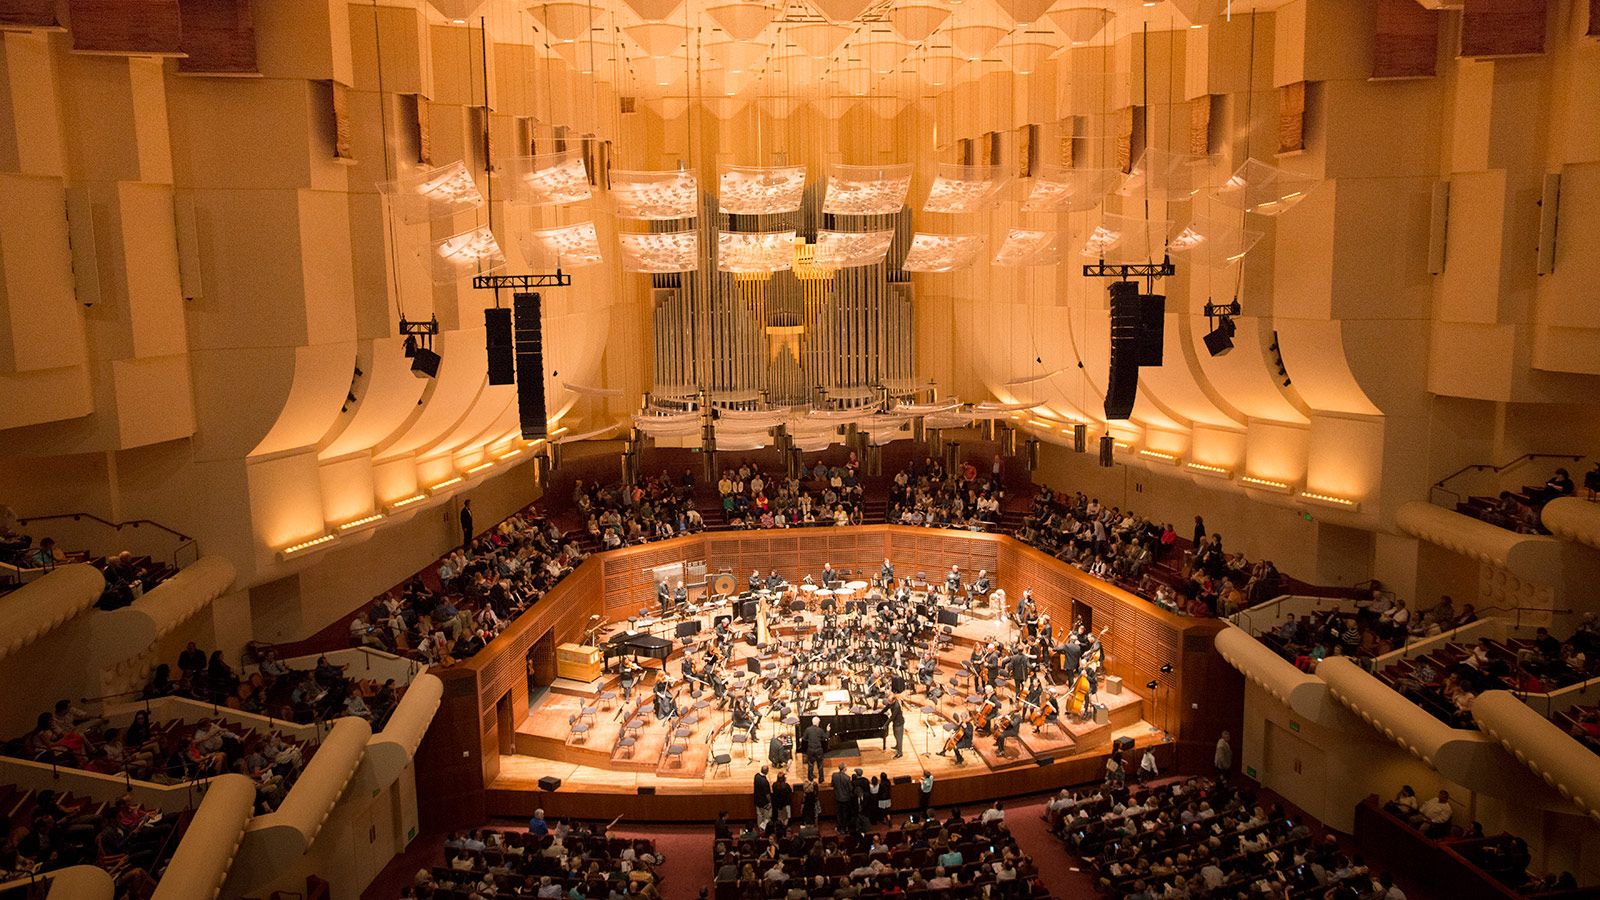 Davies Symphony Hall – San Francisco, California